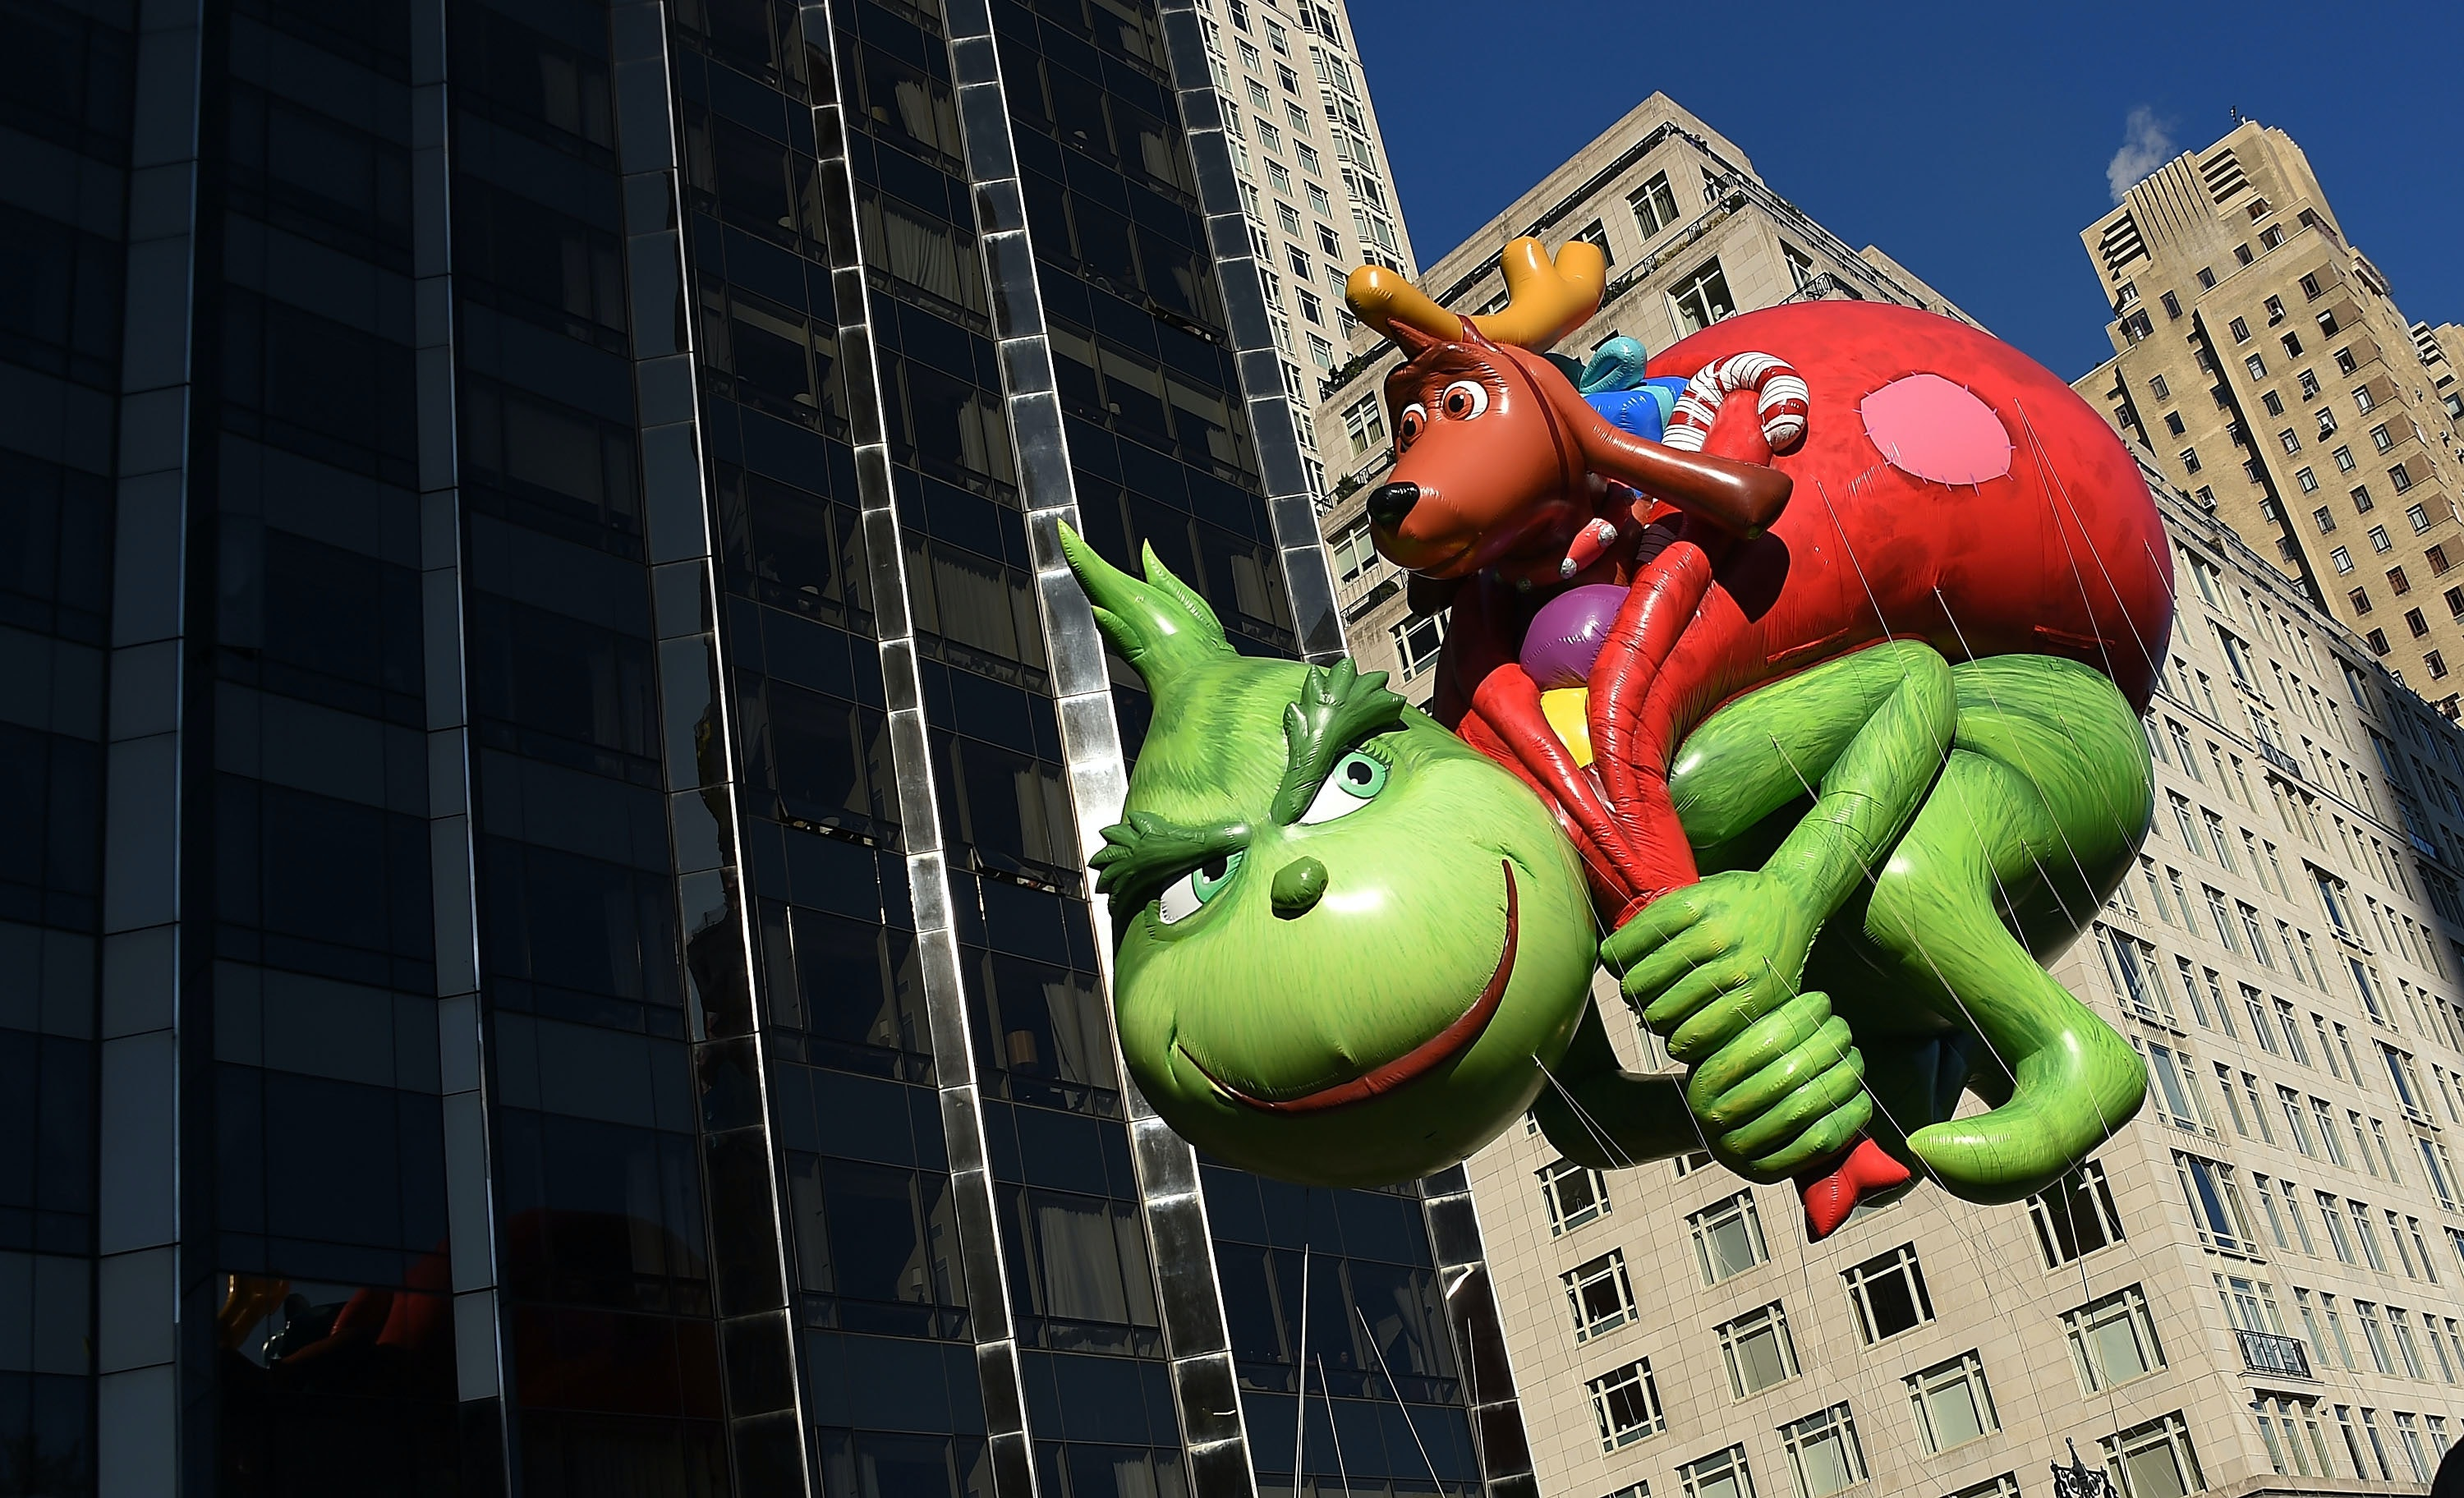 What channel is the macys day parade